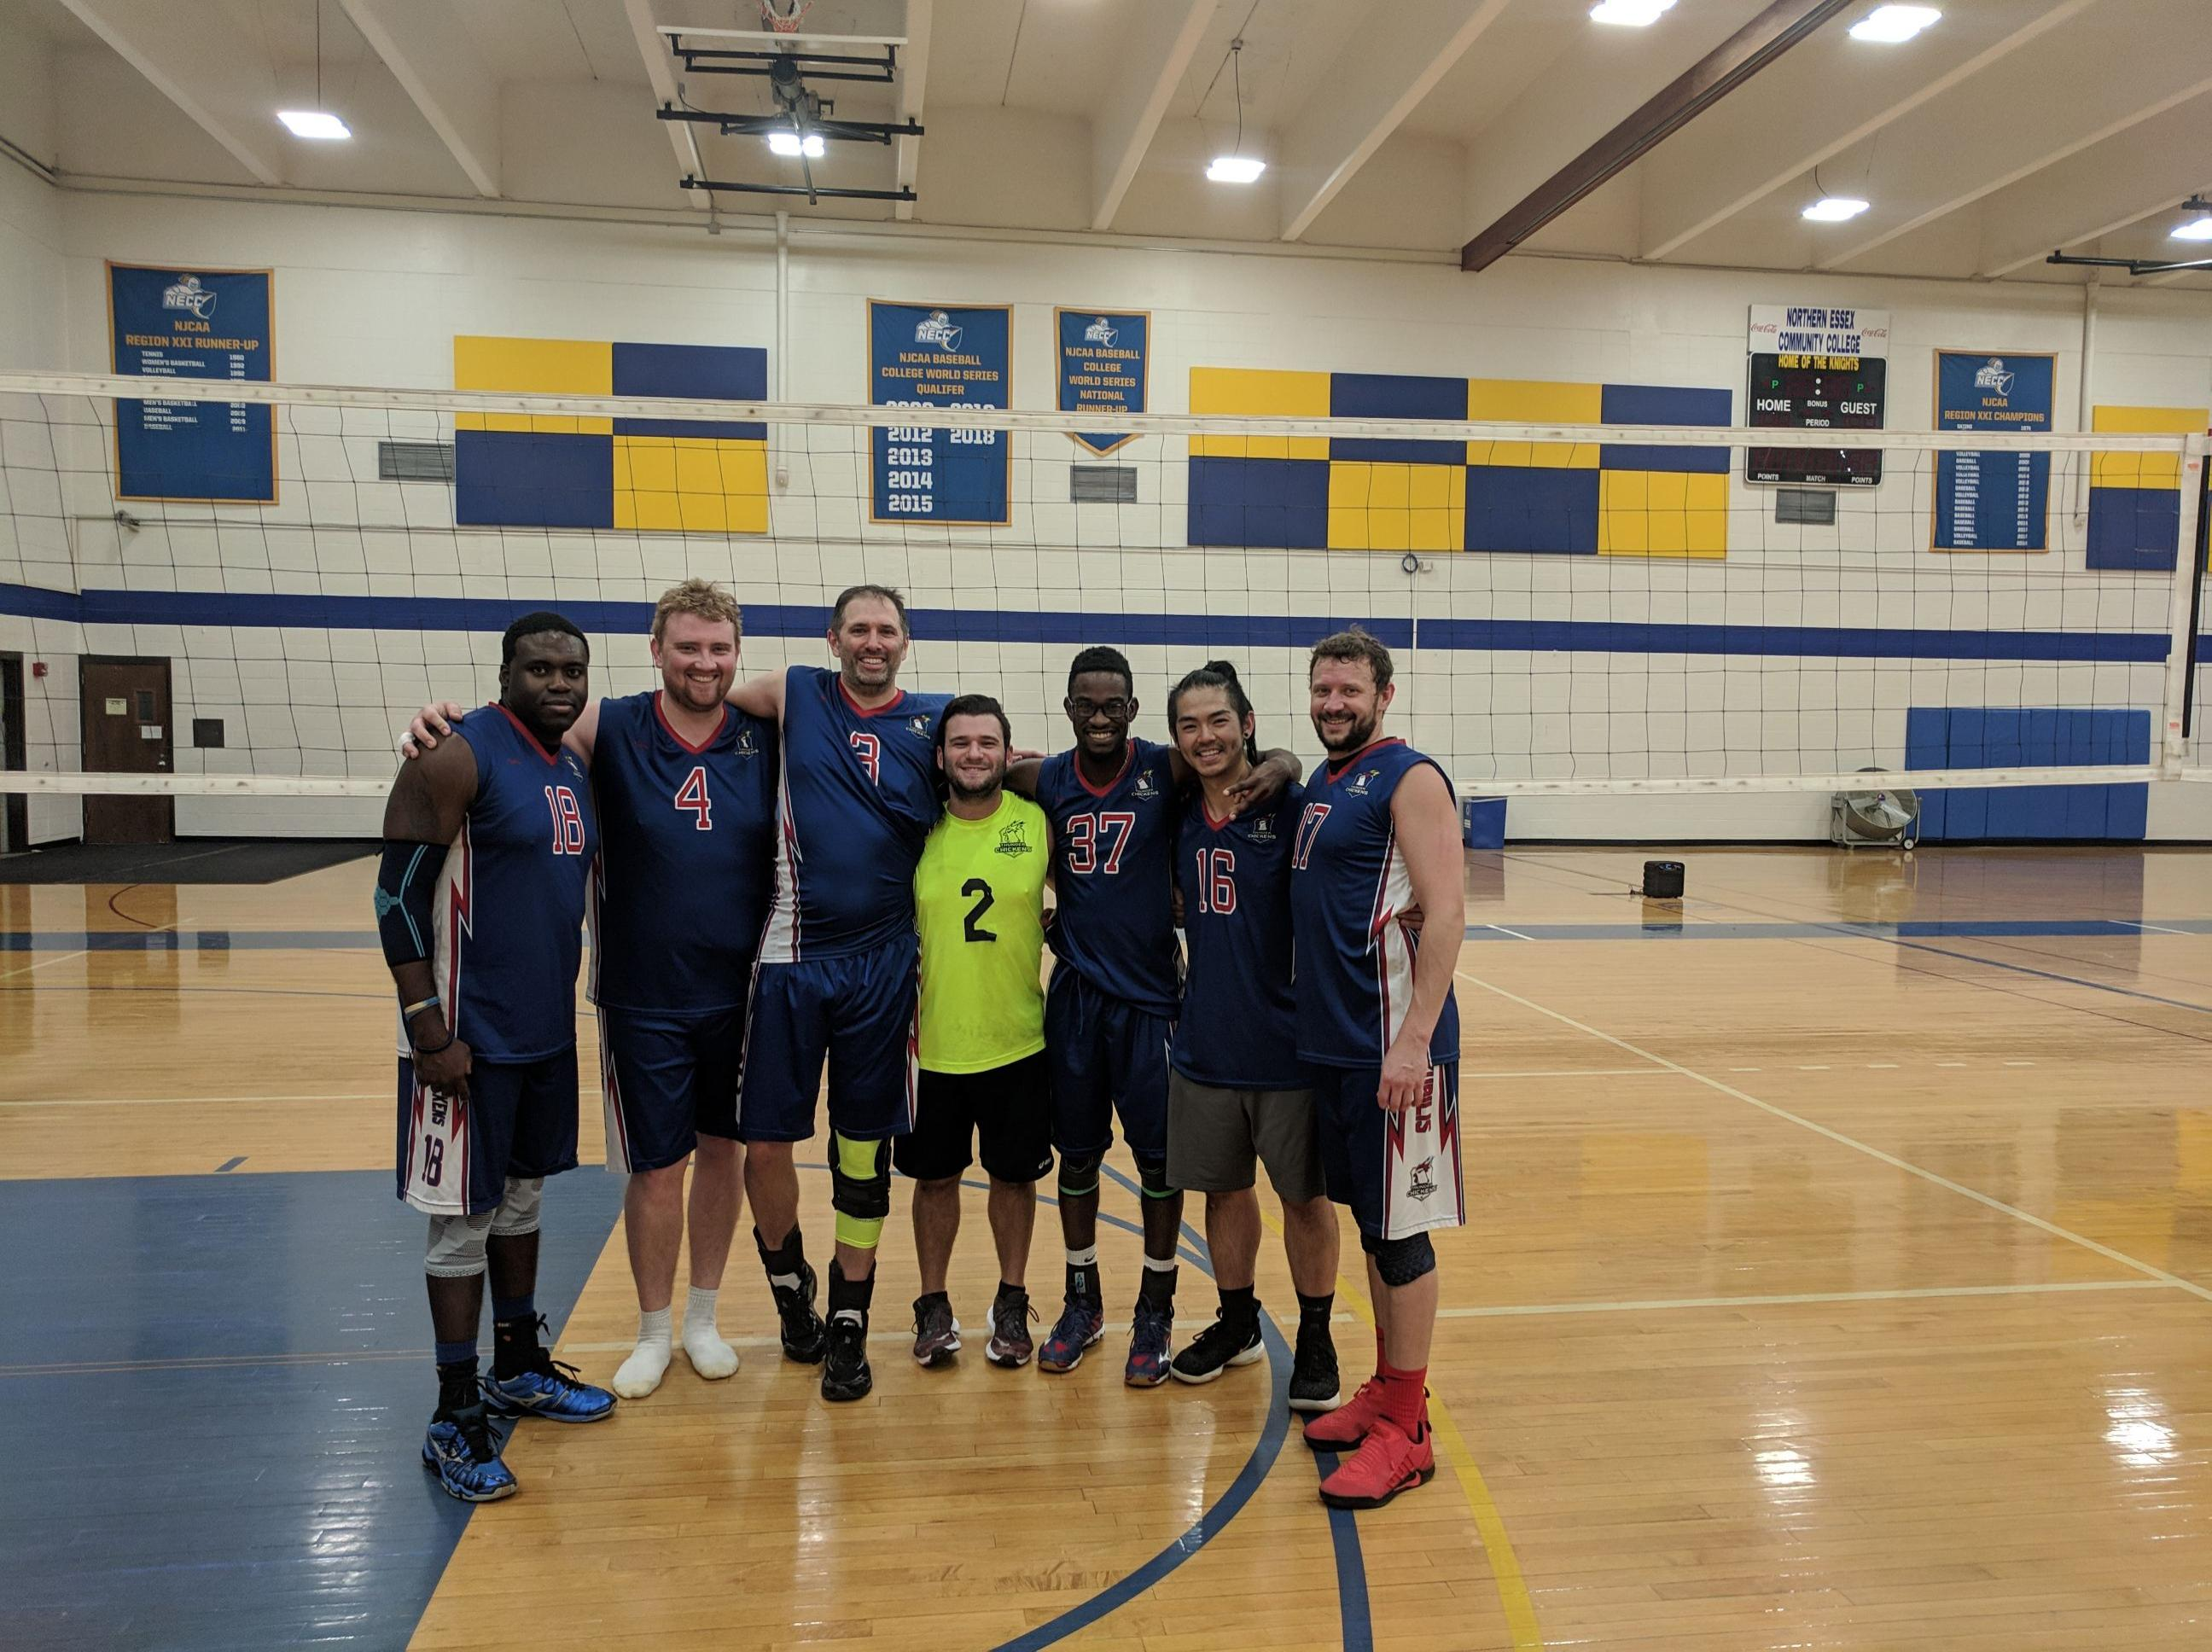 12/08/2018 MB- Champions - Wootown Thunder Chickens